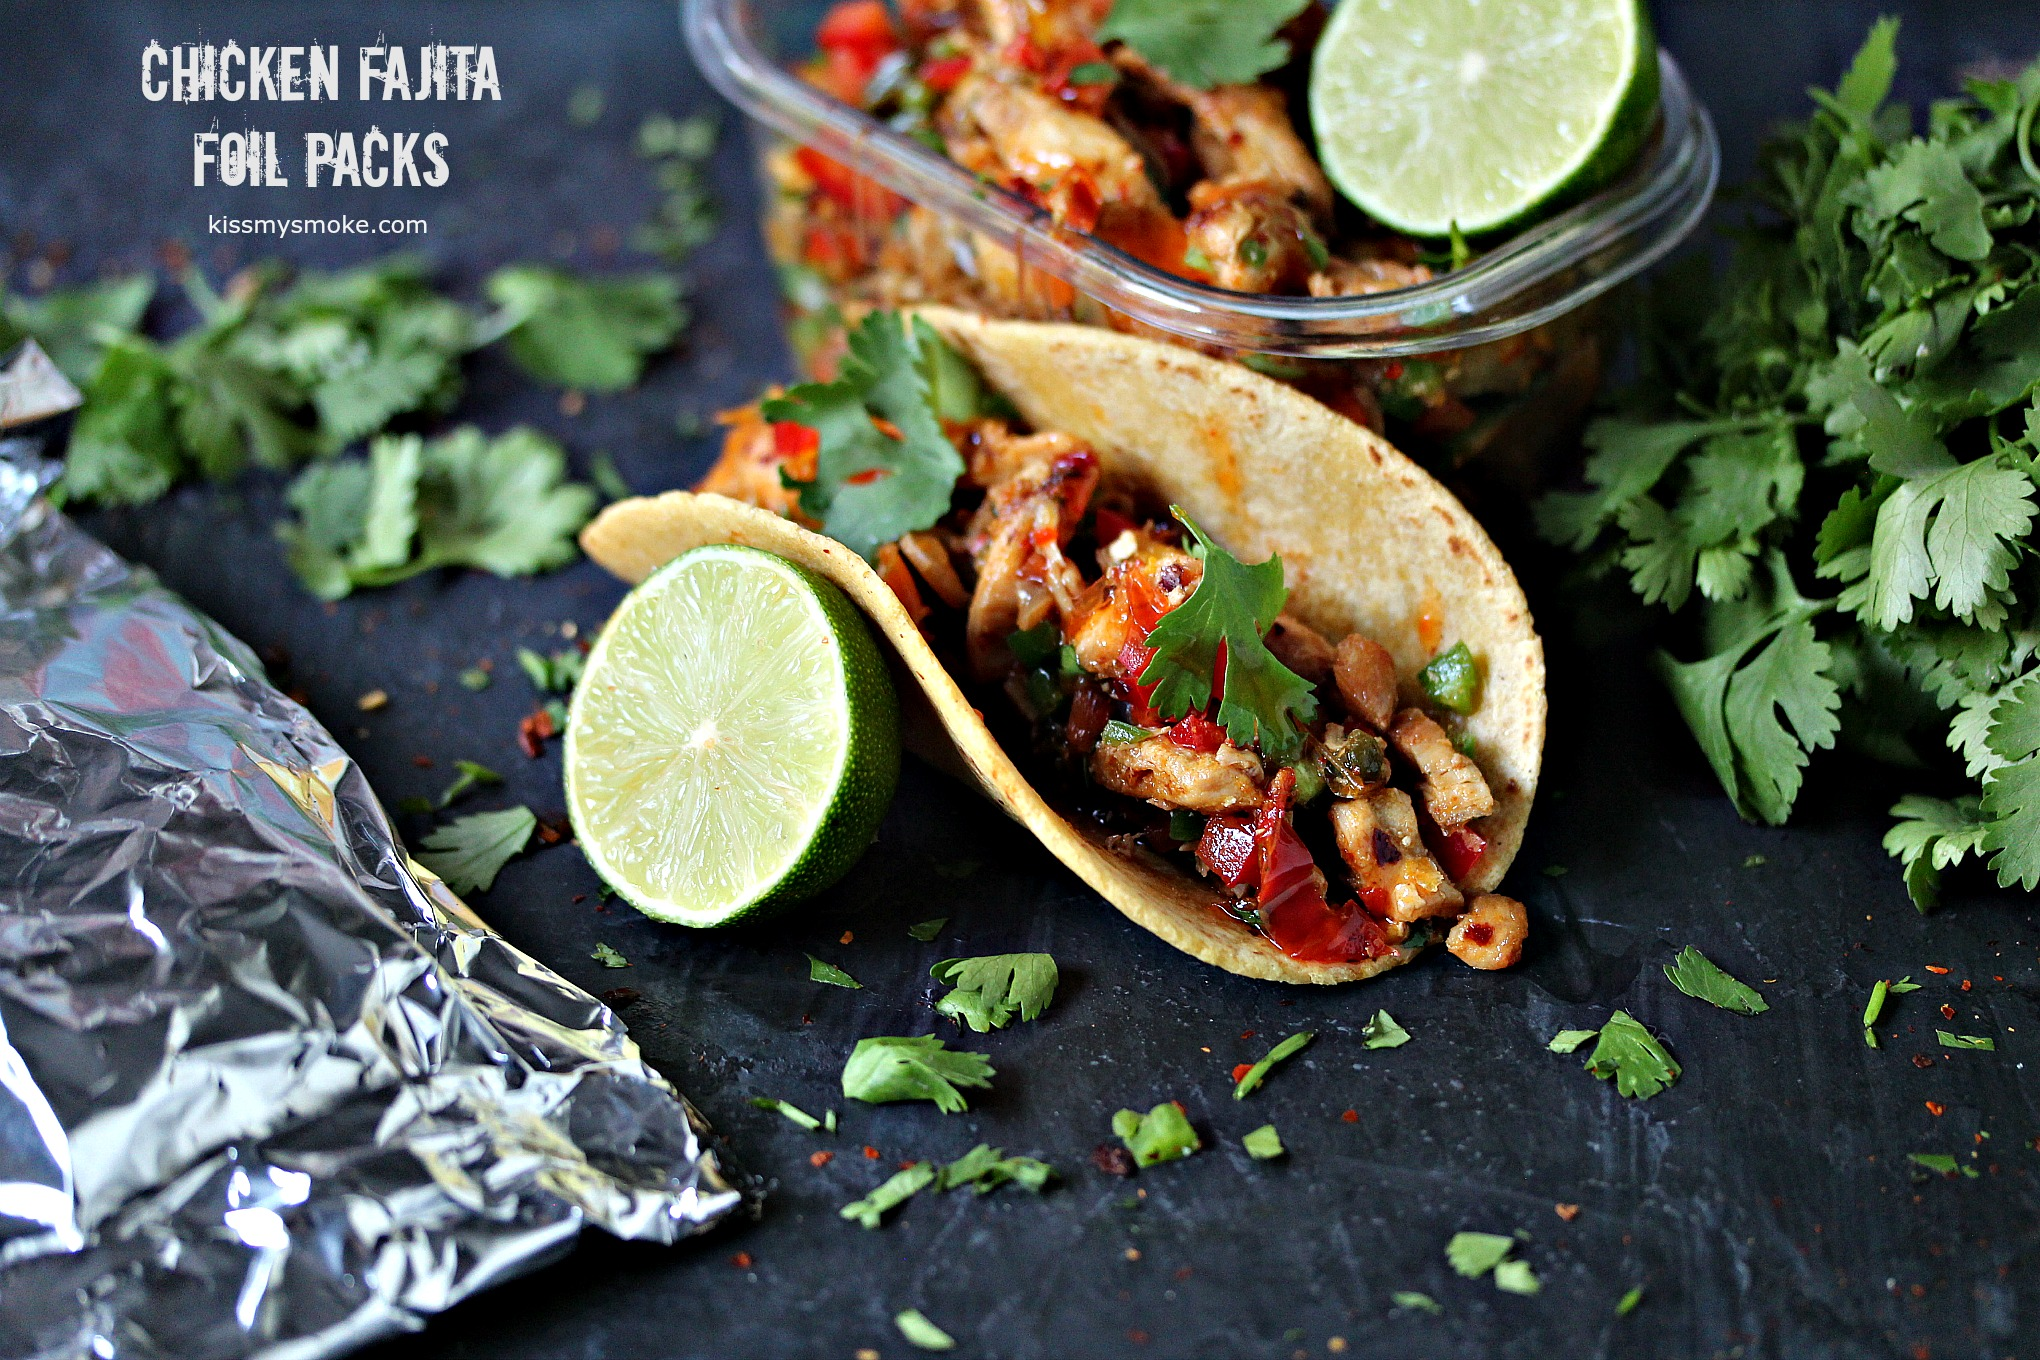 Grilled Chicken Fajita Foil Packs with cilantro and lime.